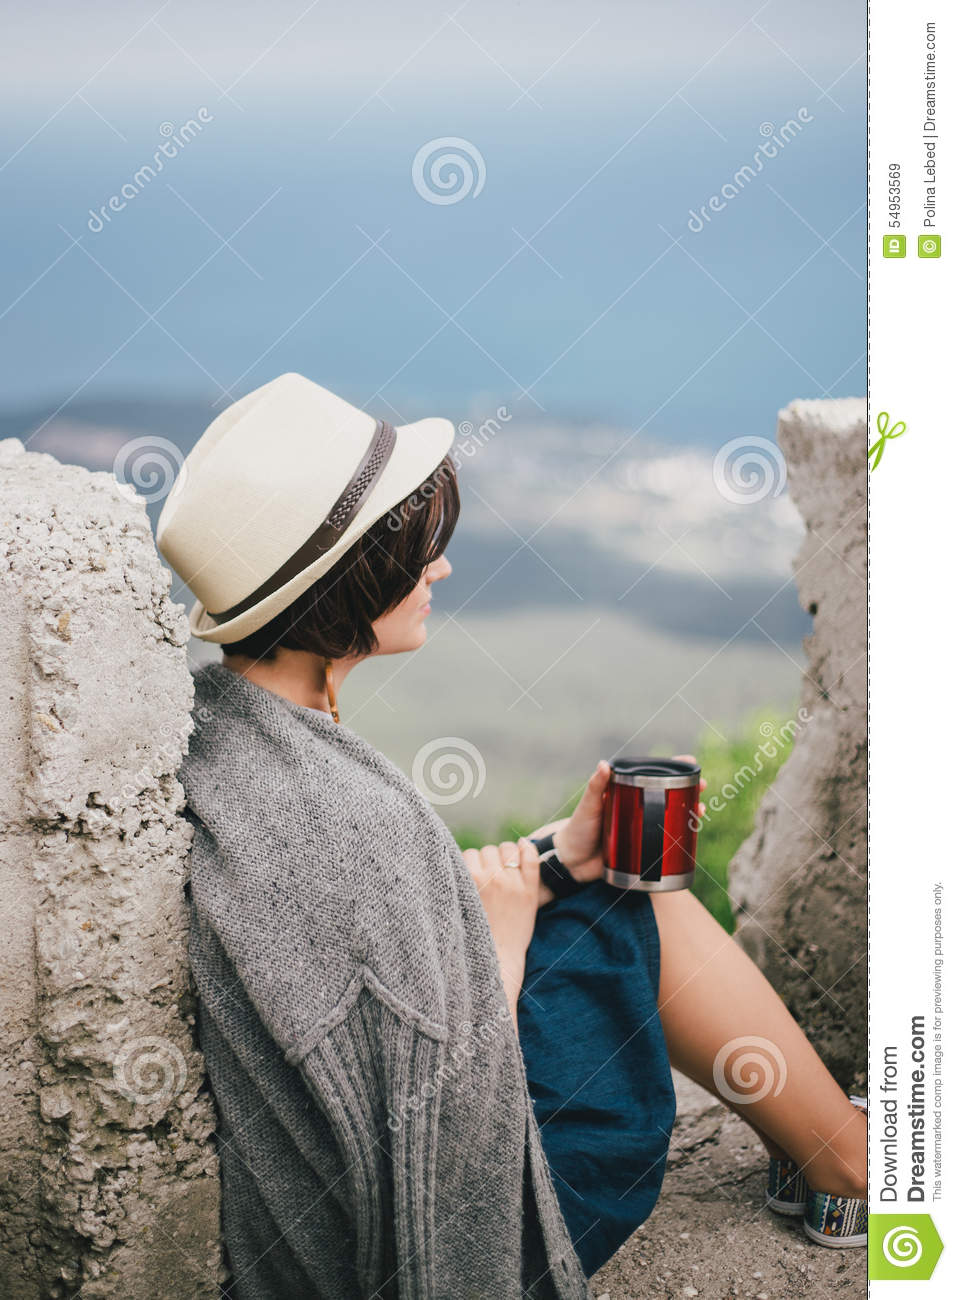 Drinking Tea In Th Mountains